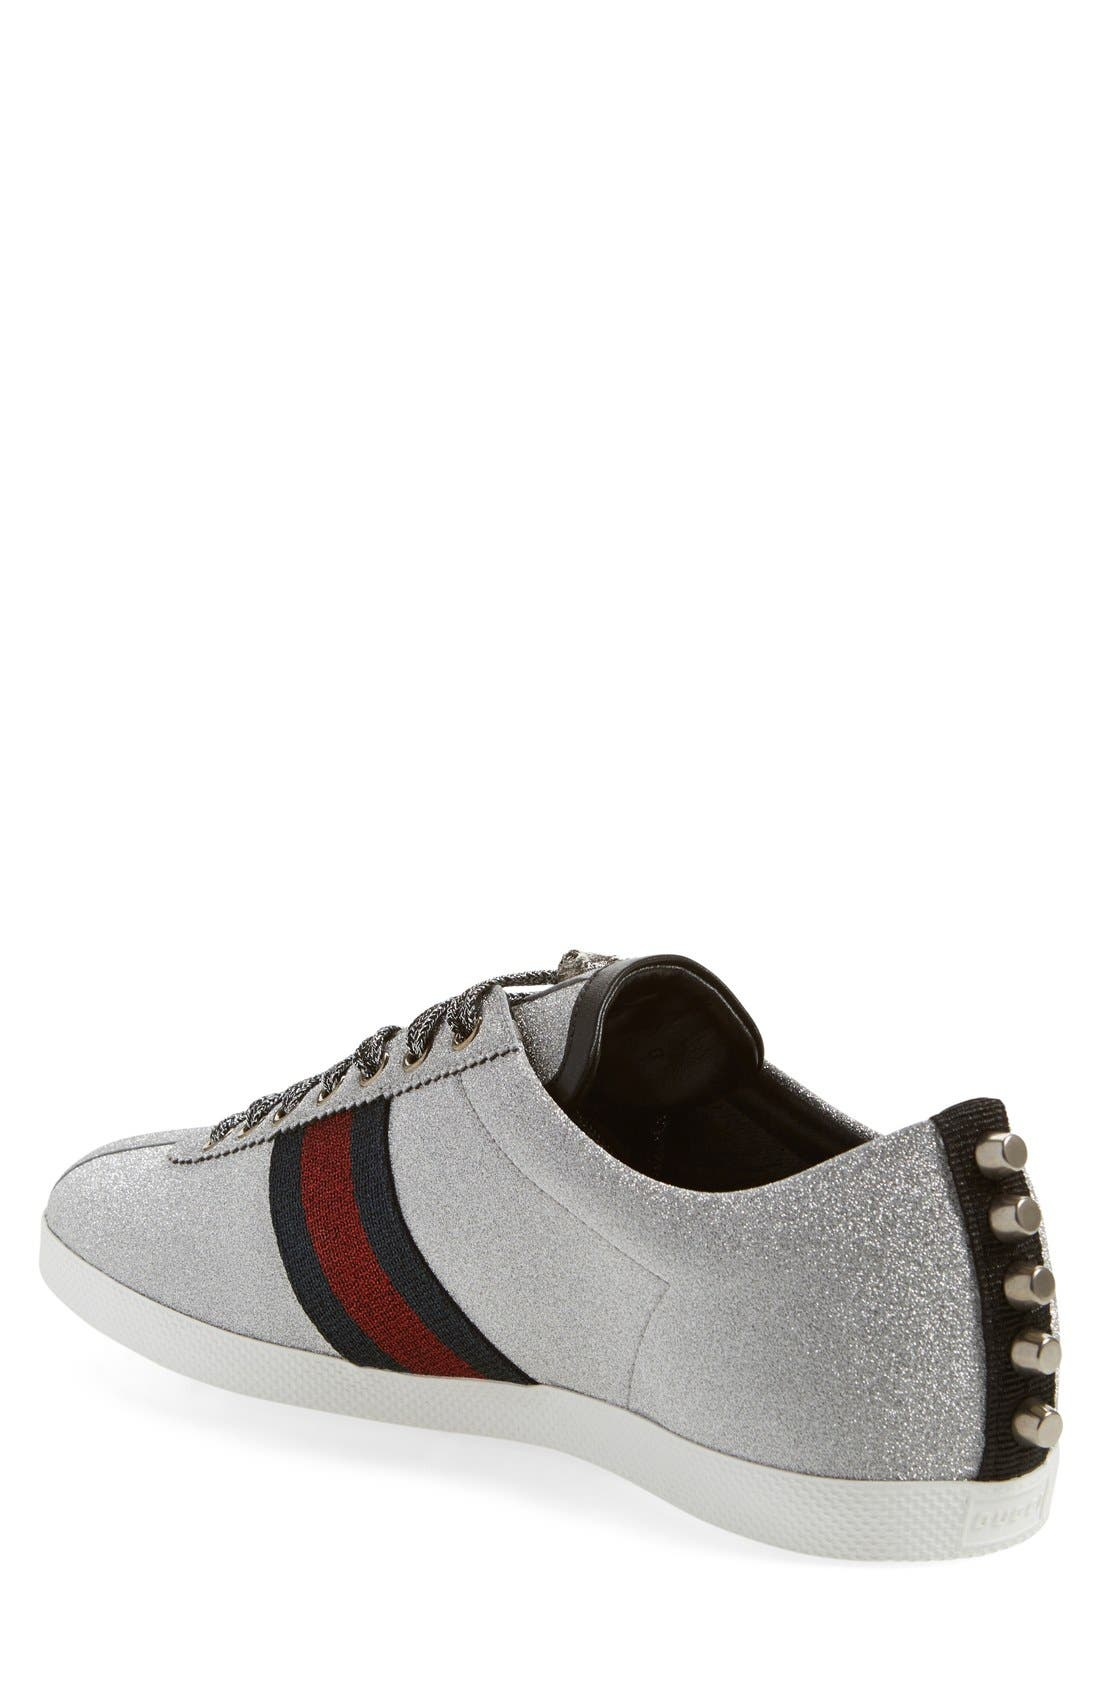 Bambi Lace-Up Sneaker,                             Alternate thumbnail 2, color,                             ARGENTO FABRIC